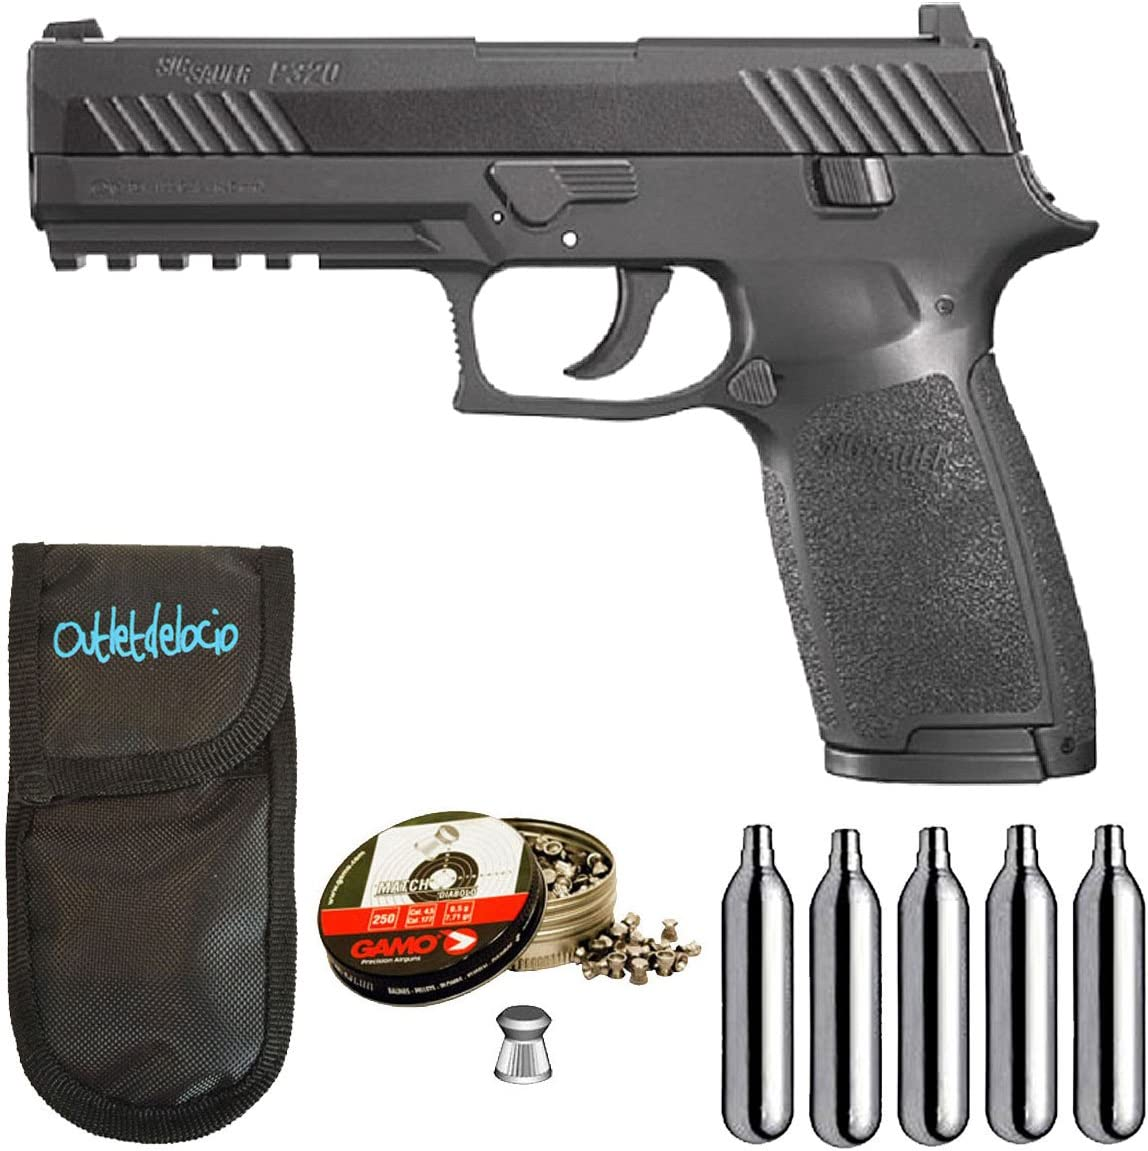 Pistola perdigon SSP320B Sig Sauer P320 co2 Blowback 4,5mm + Funda Portabombonas + Balines + Bombonas co2. 23054/29318/38203